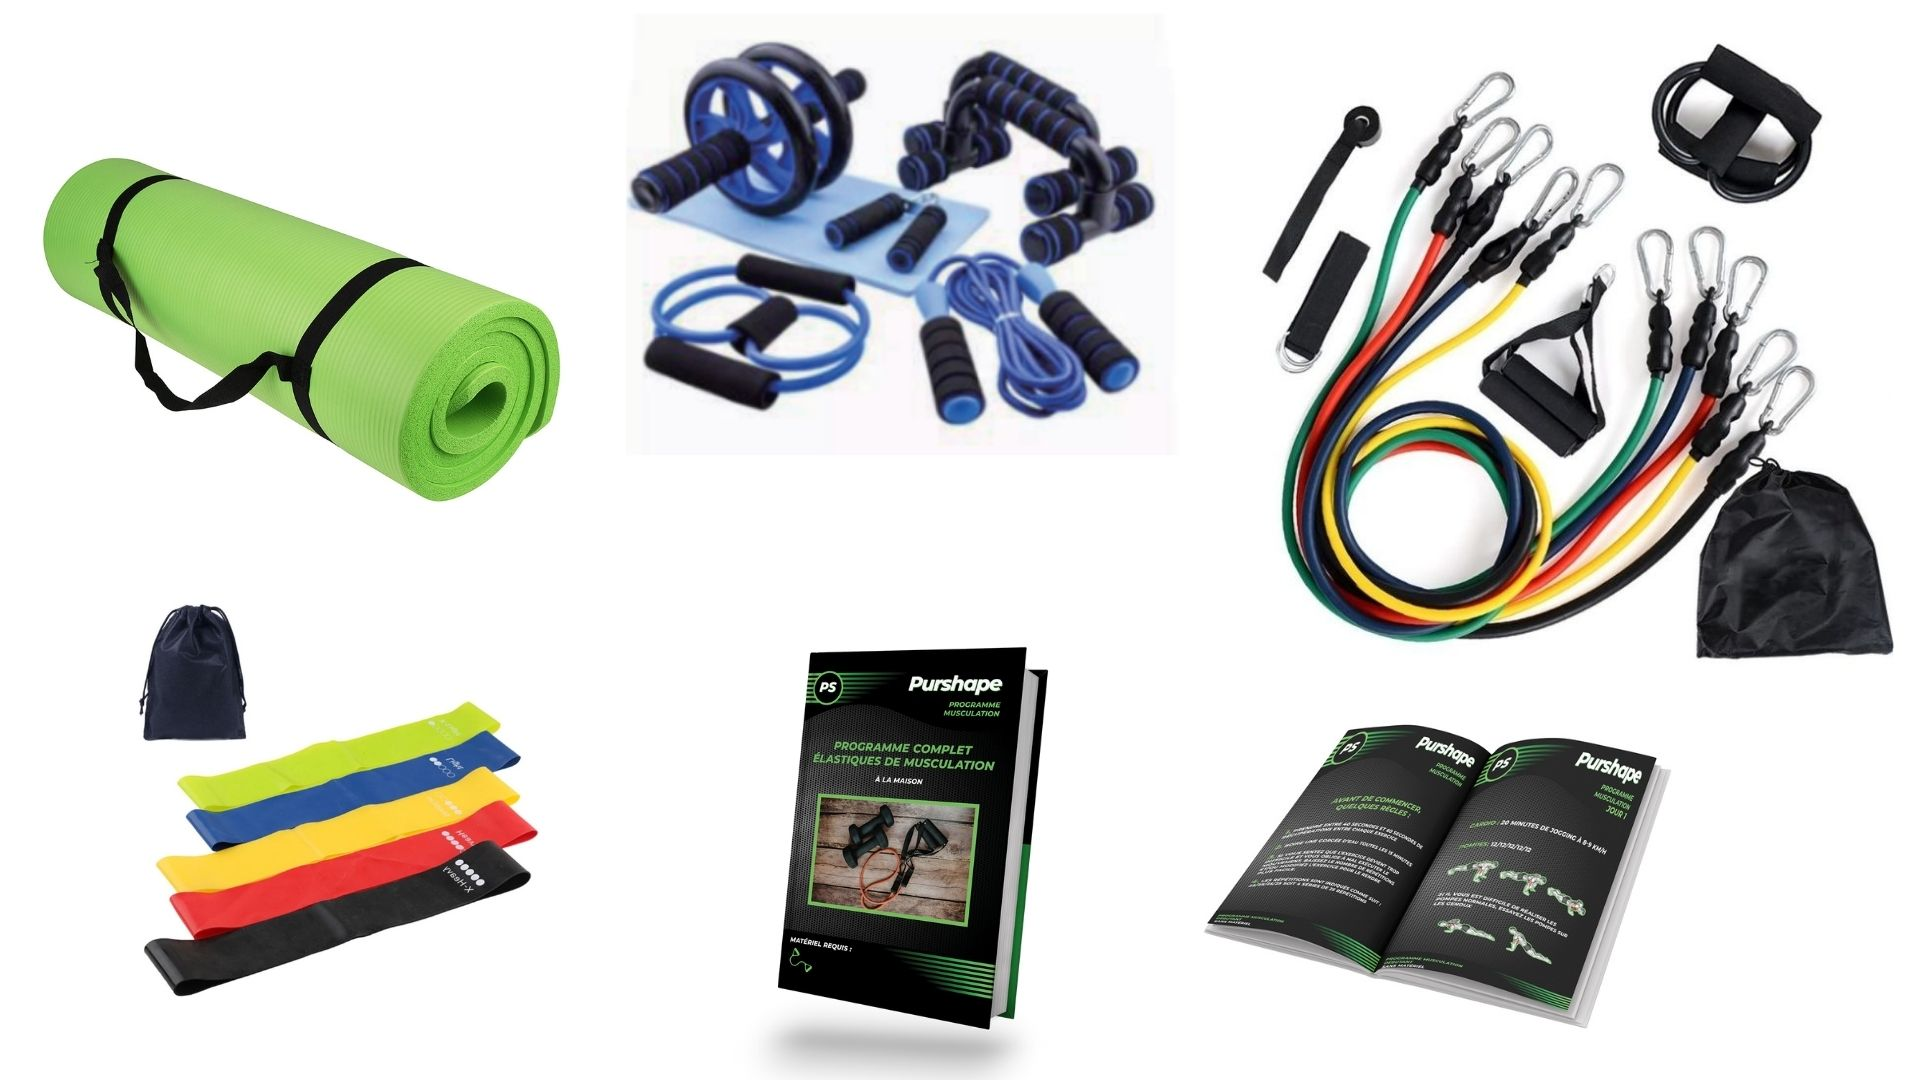 Kit complet home Gym pas cher